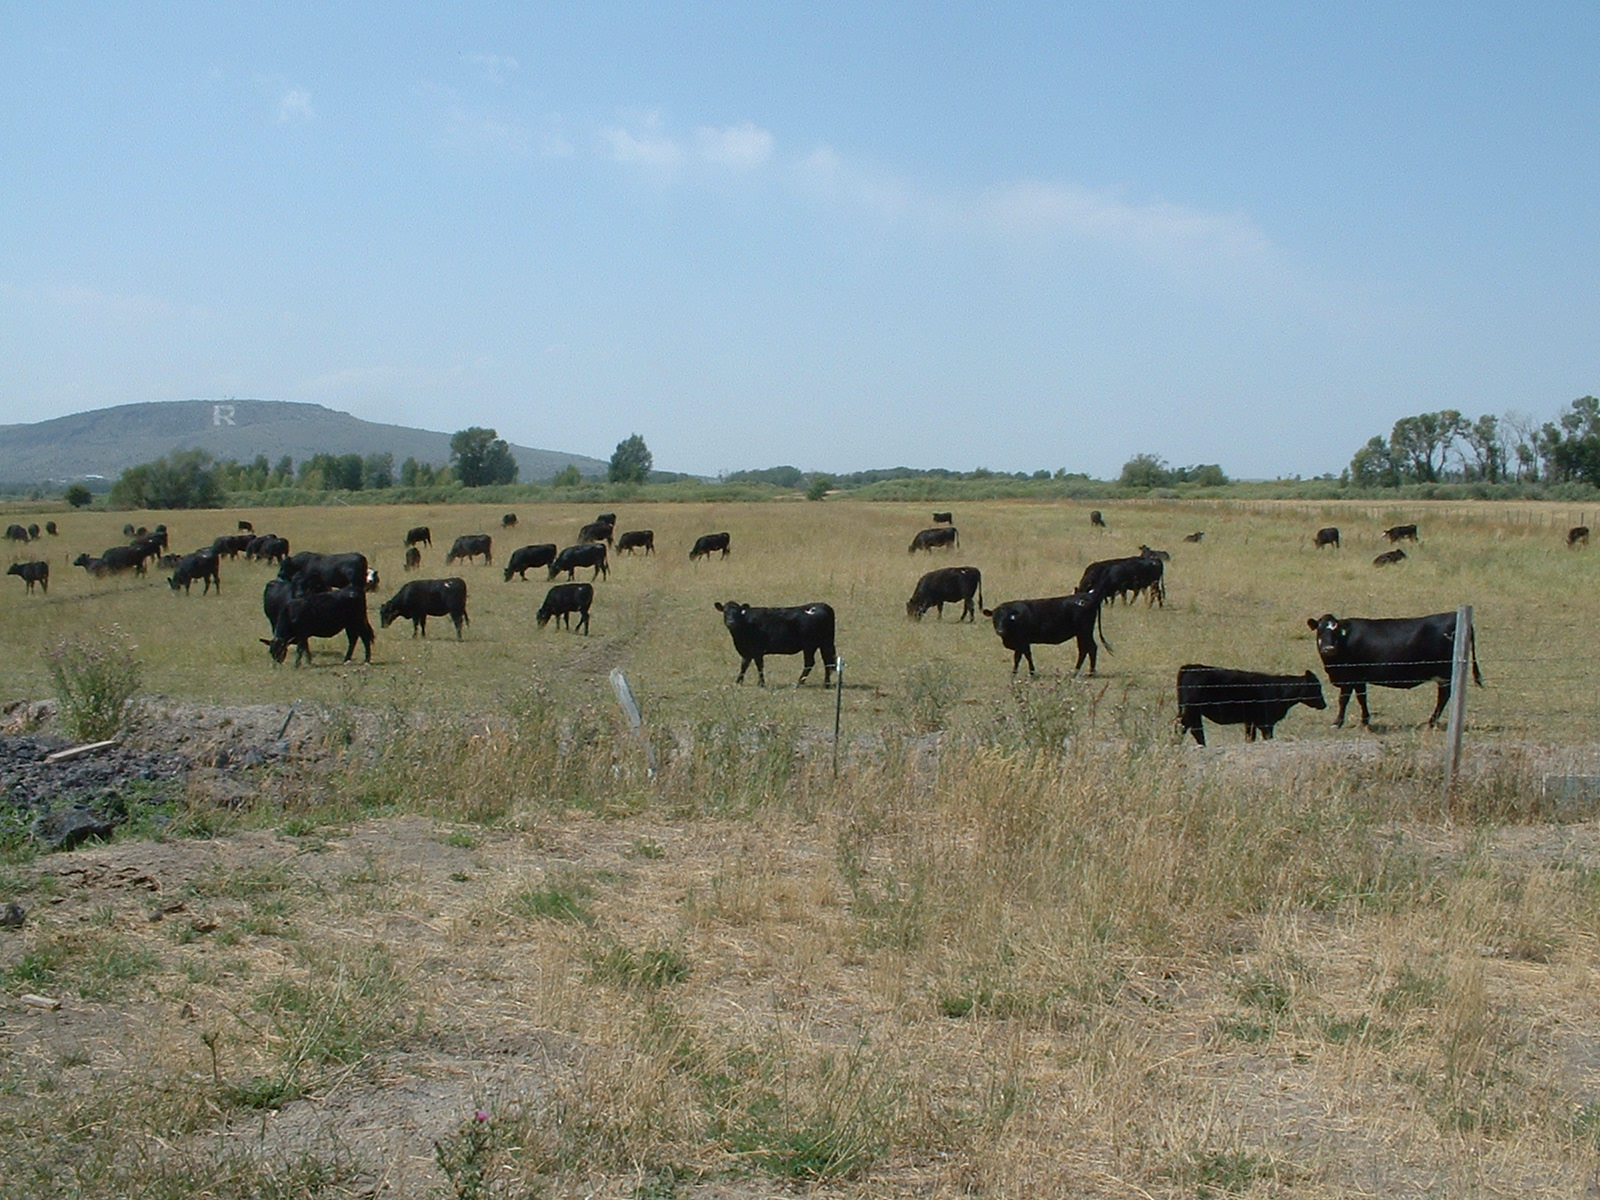 We develop comprehensive ranch management plans to maximize ecologic, investment and recreation values. -